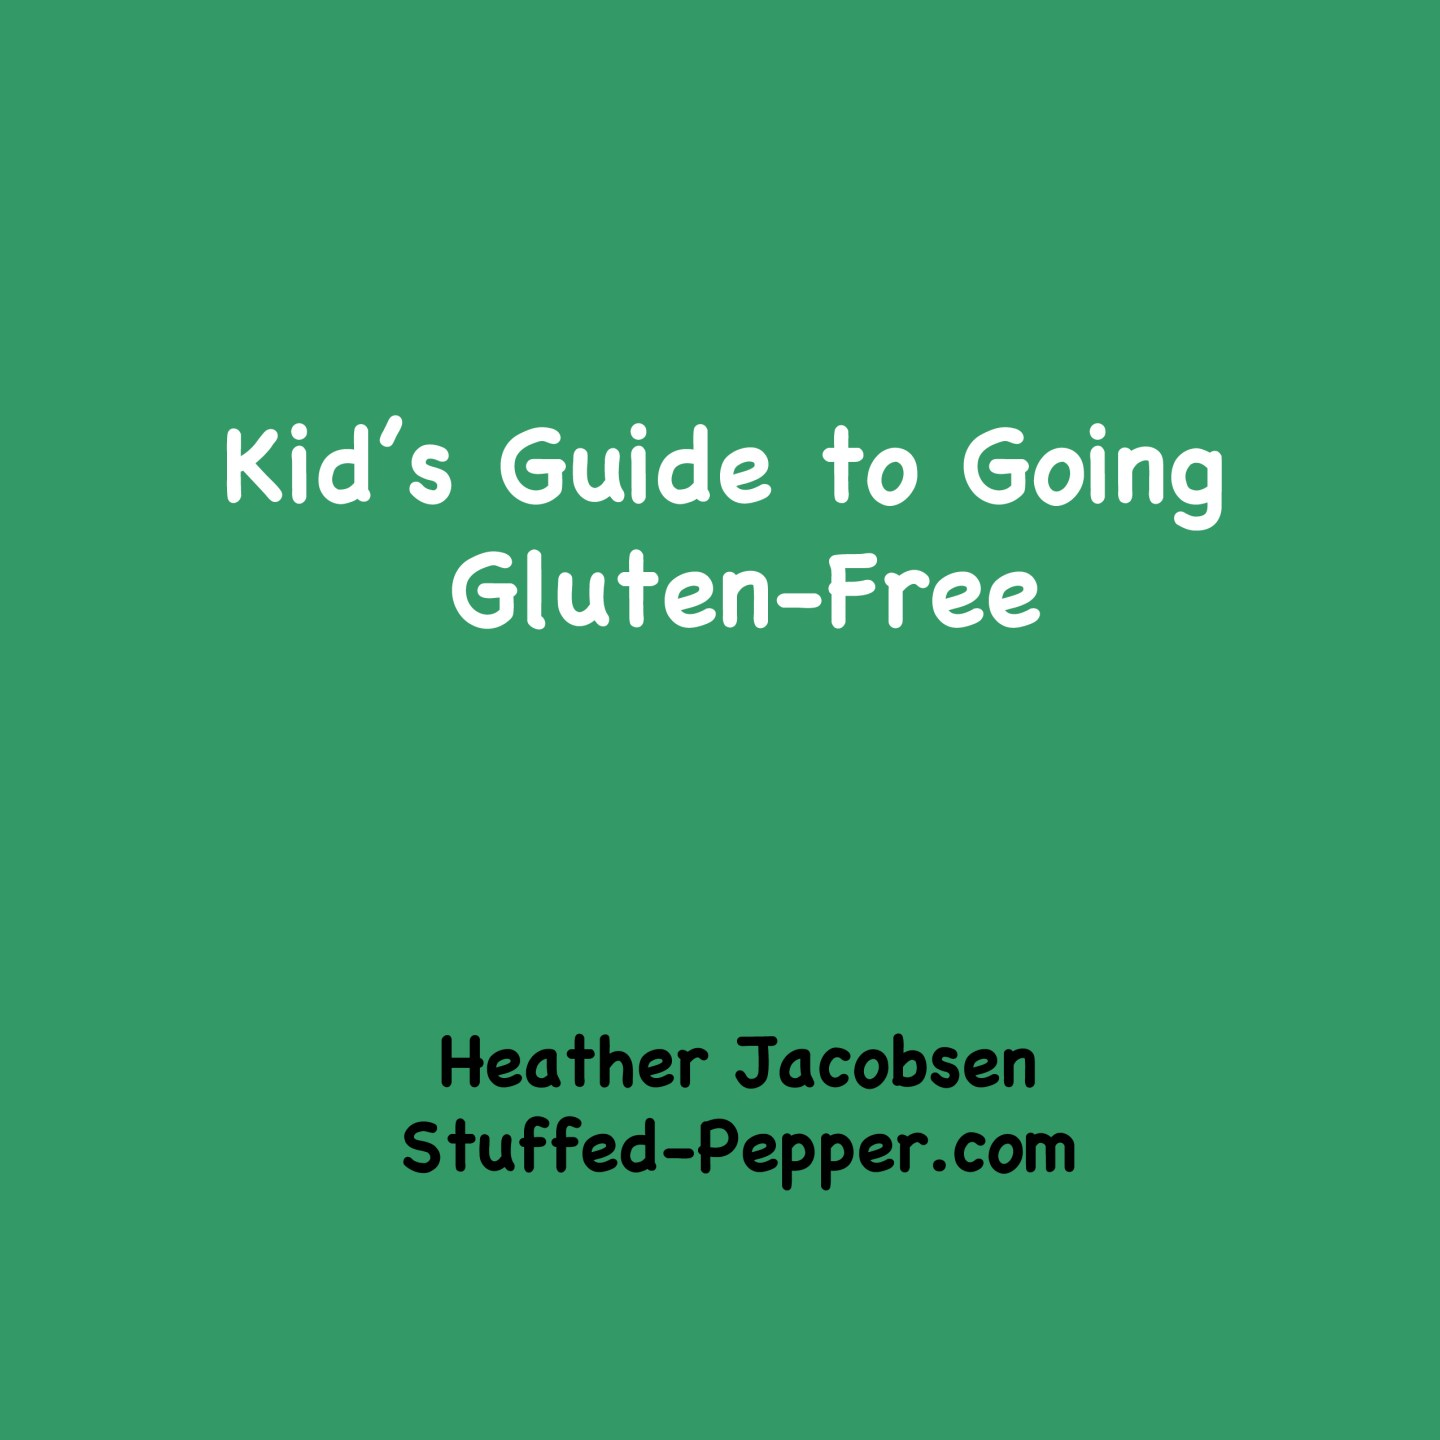 Kid's Guide to Going Gluten-Free